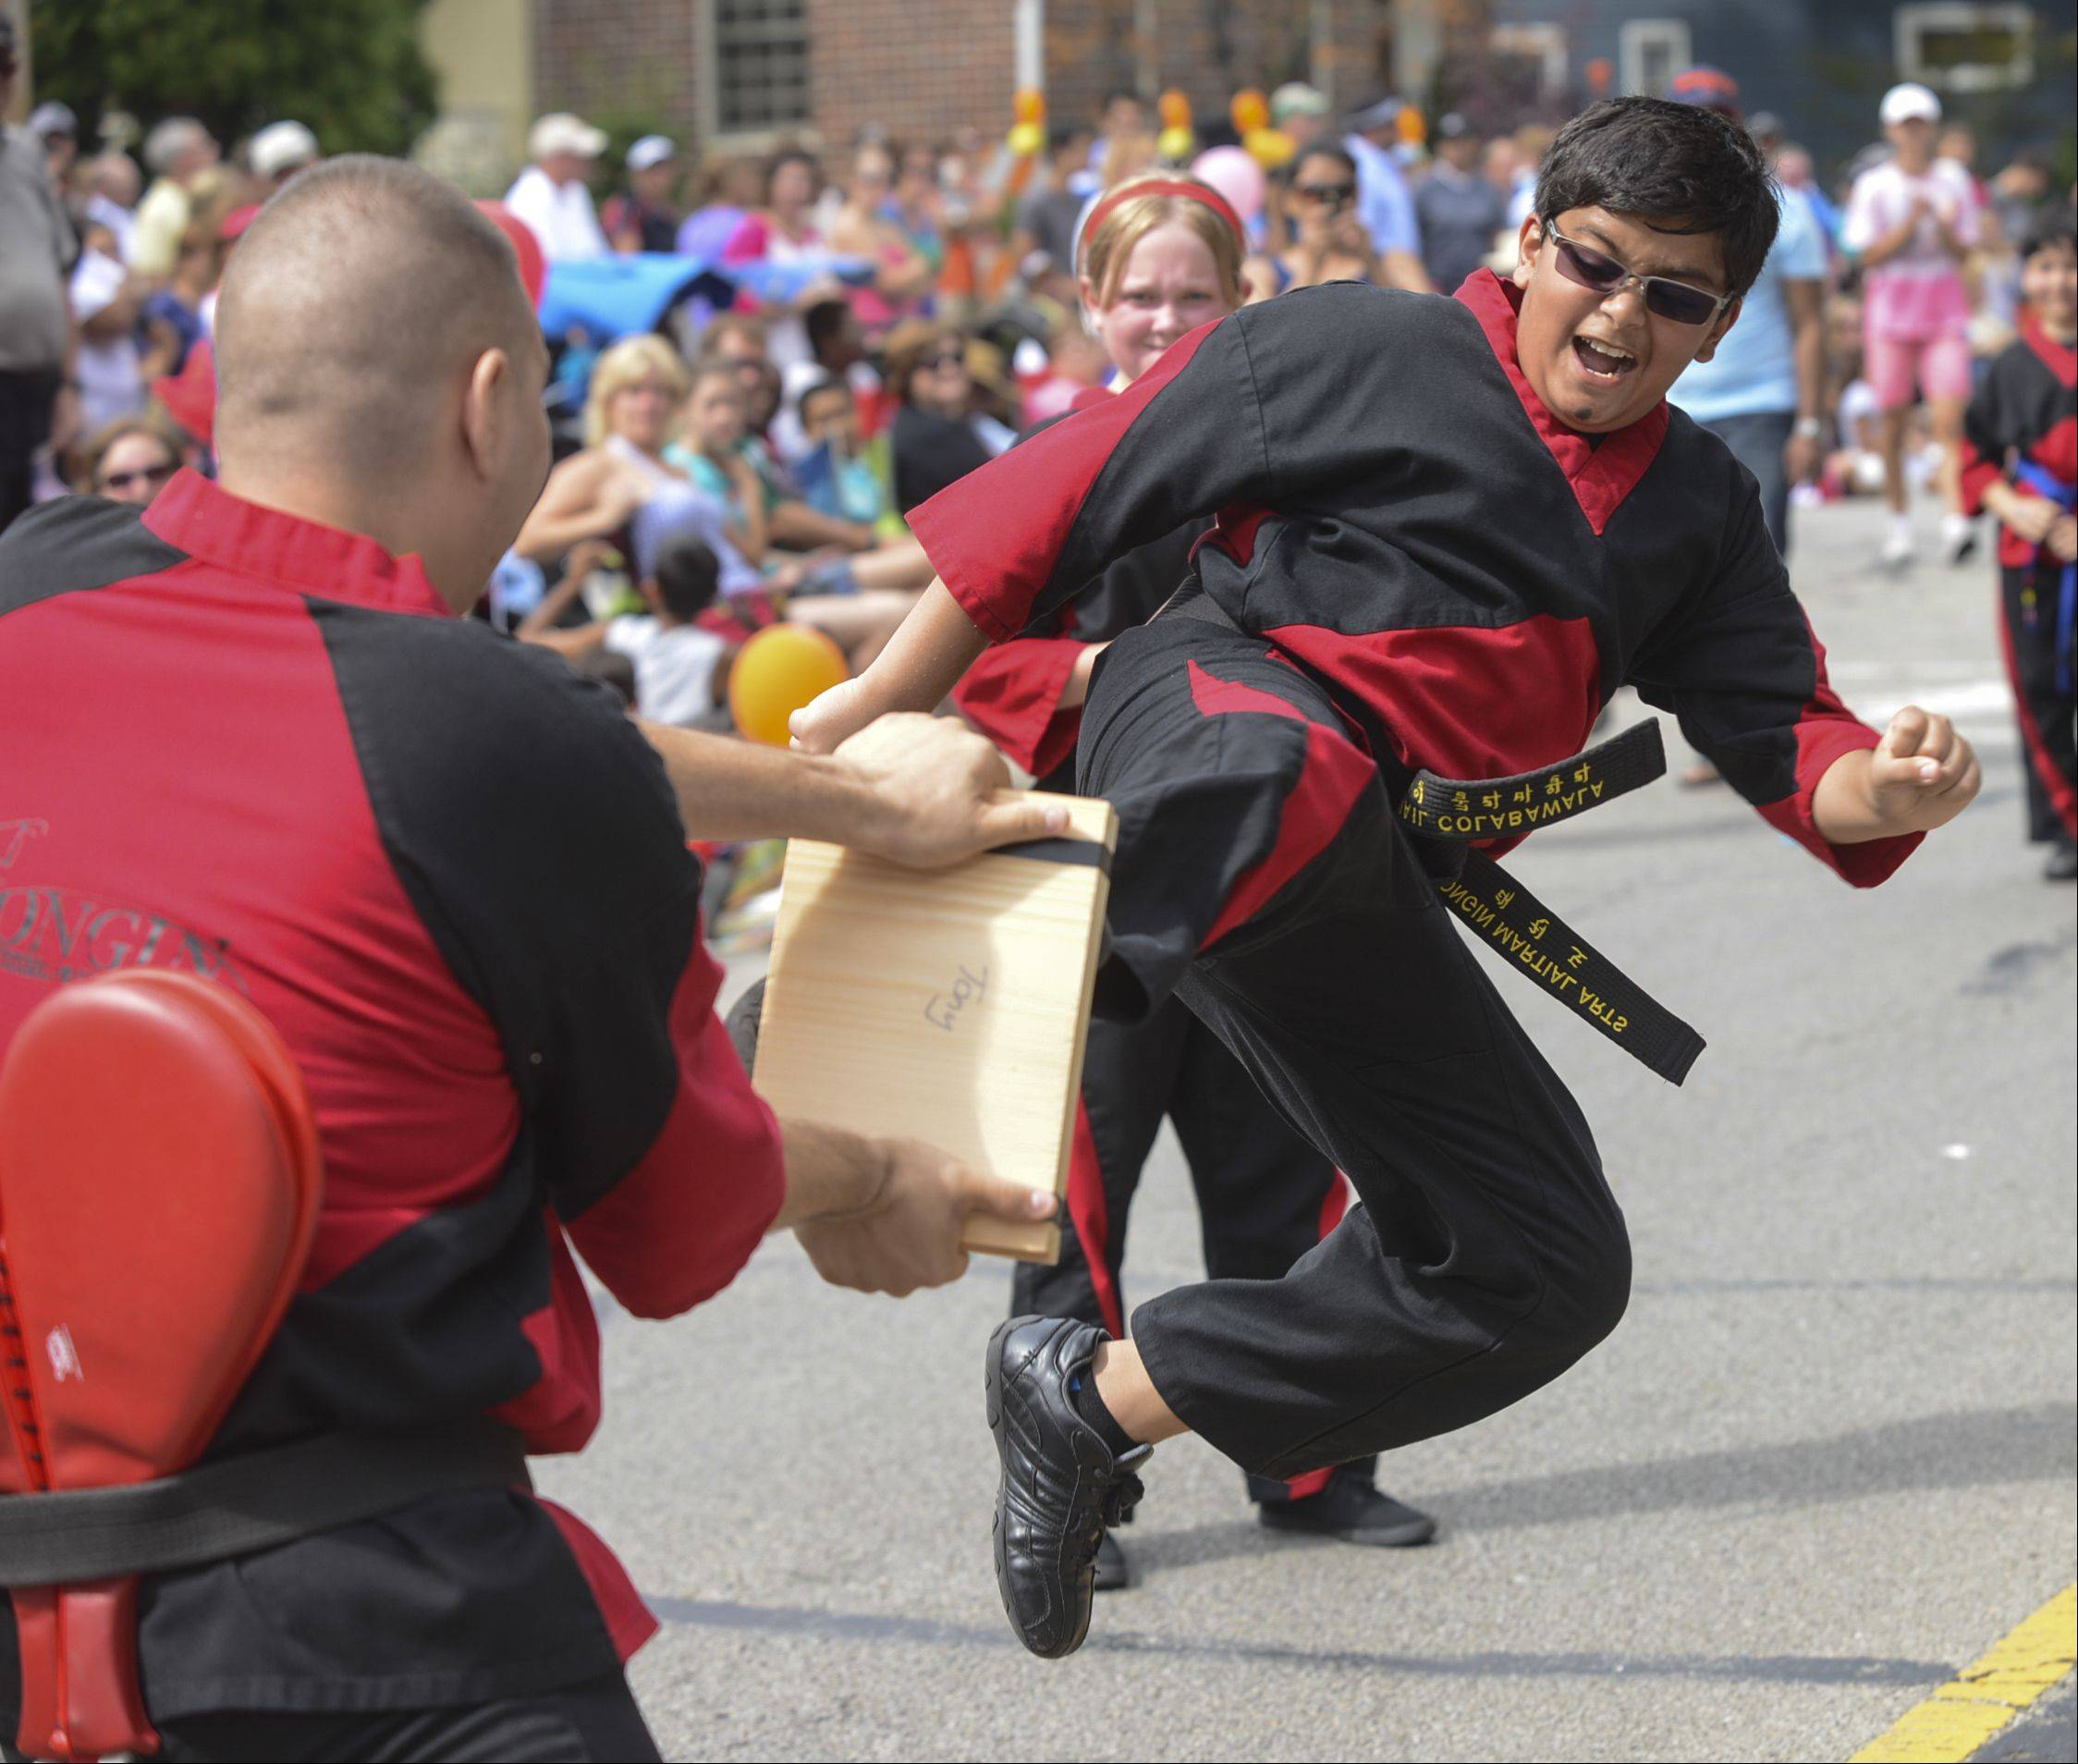 Yongin Martial Arts student Kumail Colabawala, 12 of Naperville does a flying kick in an attempt to break two boards while marching in the Naperville Labor Day parade Monday.